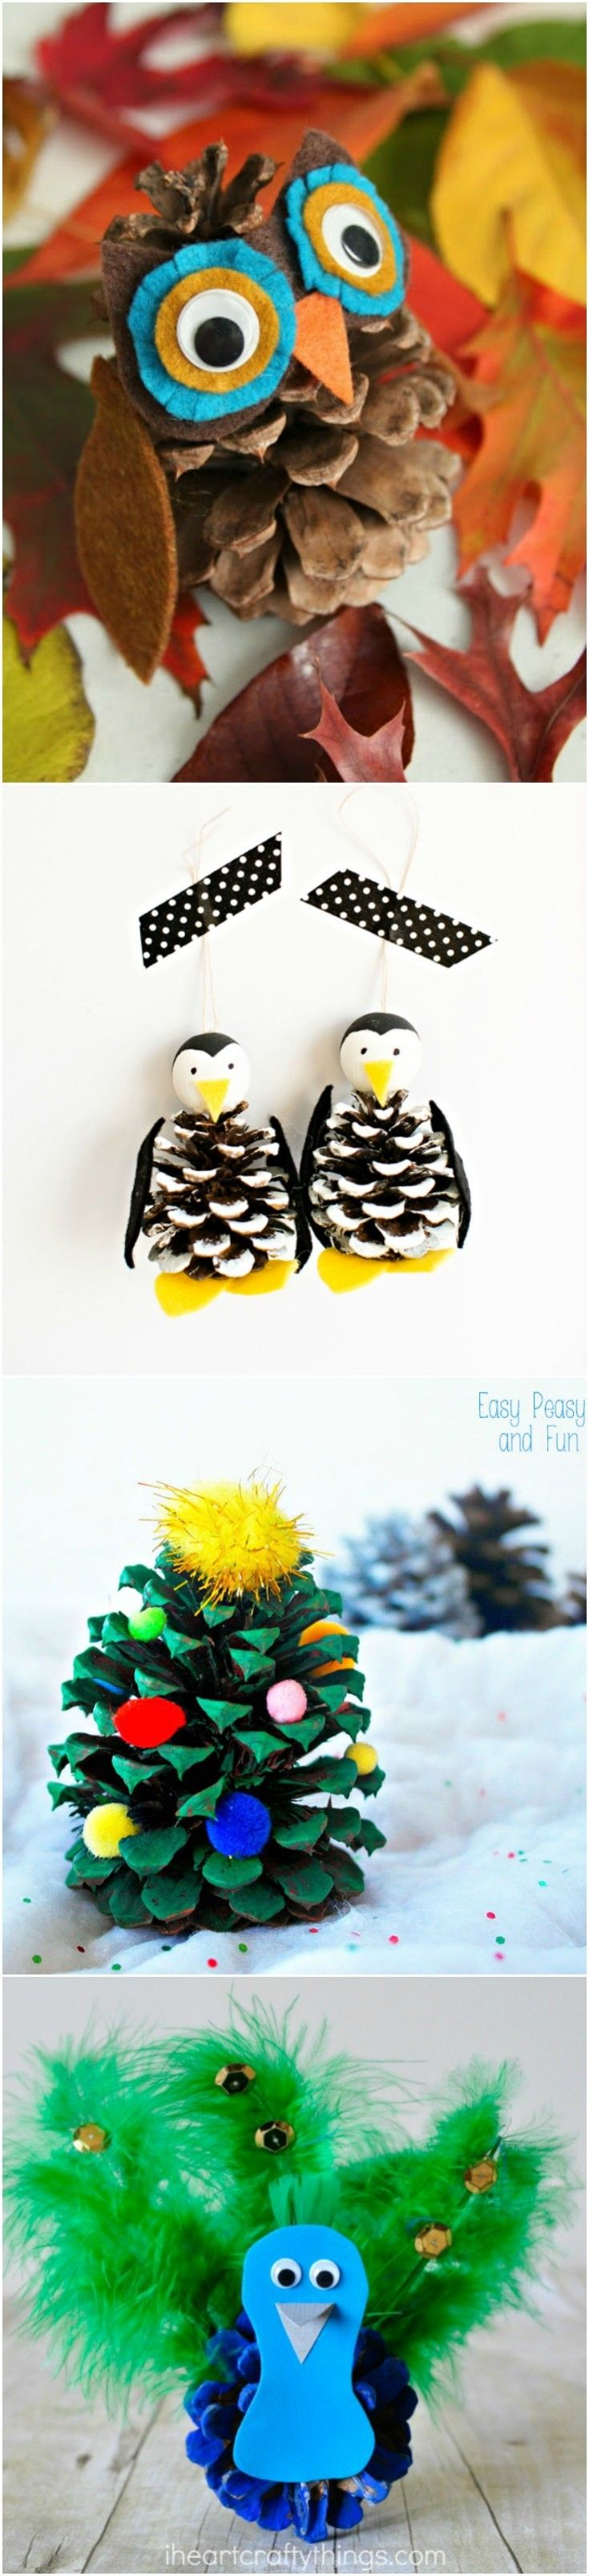 20 Of The Cutest Pine Cone Crafts For Kids Growing Creative Kids